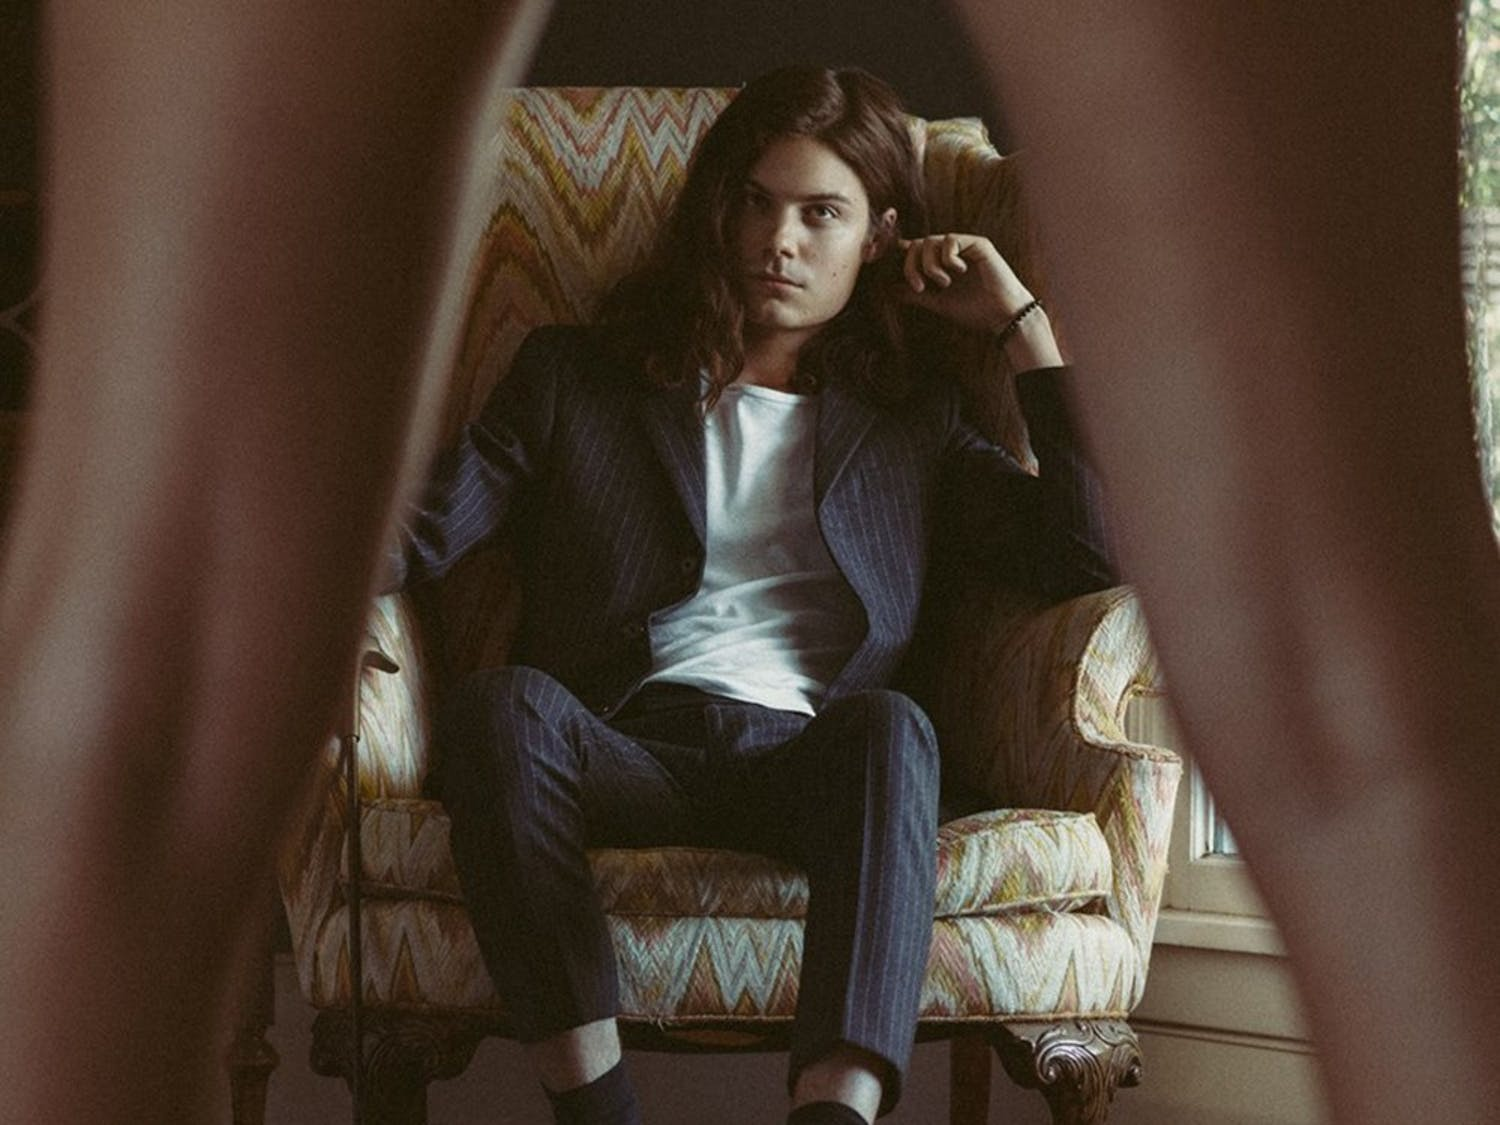 BØRNS, an indie pop artist who bases his sound onthe West Coast vibe, came to Greene Street on Wednesday to perform a free concert for students.